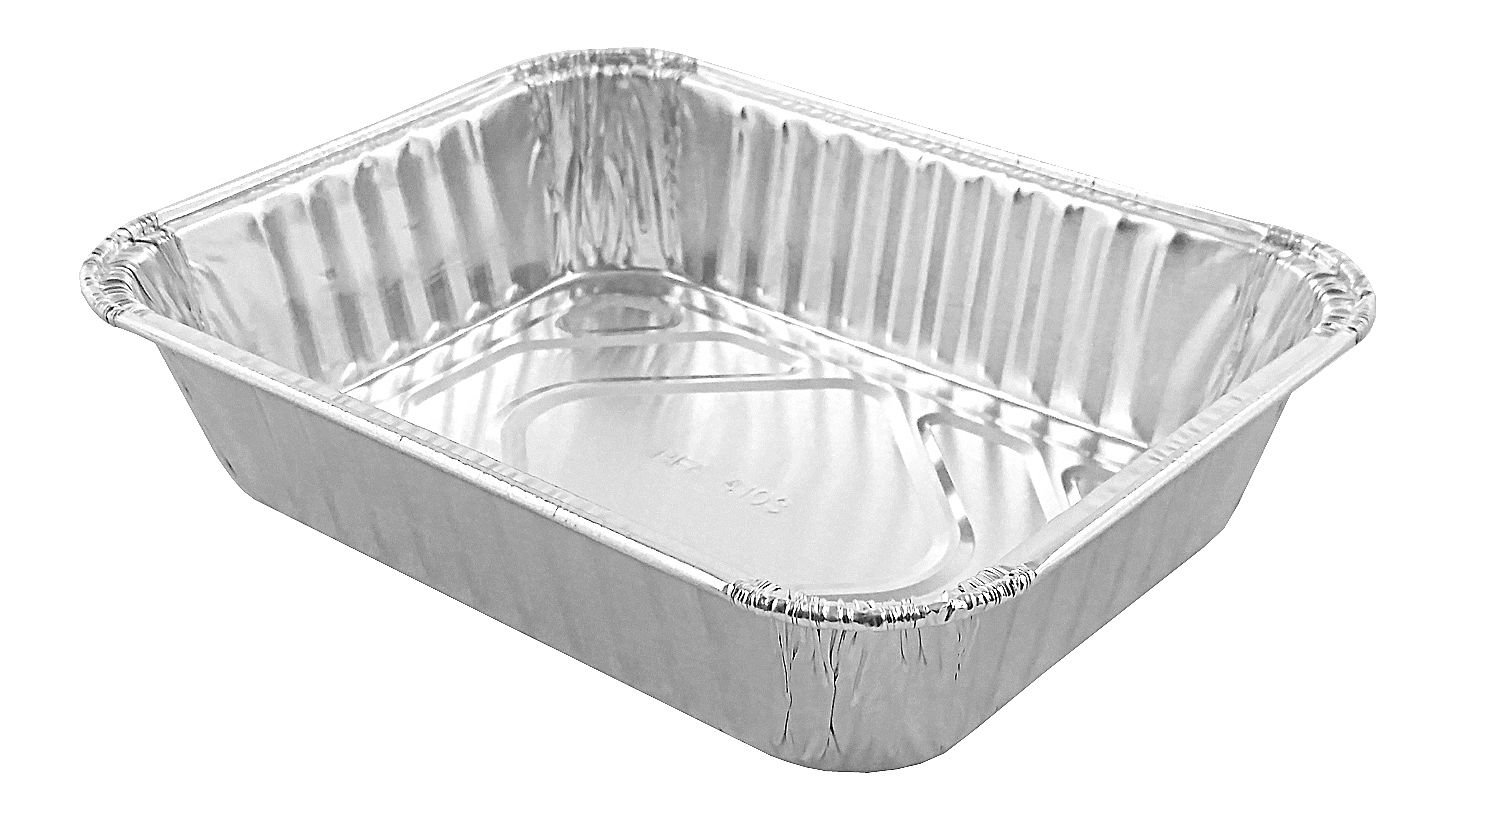 Handi-Foil 1 lb. Oblong Deep School Senior Feeding Disposable Pan (pack of 25)